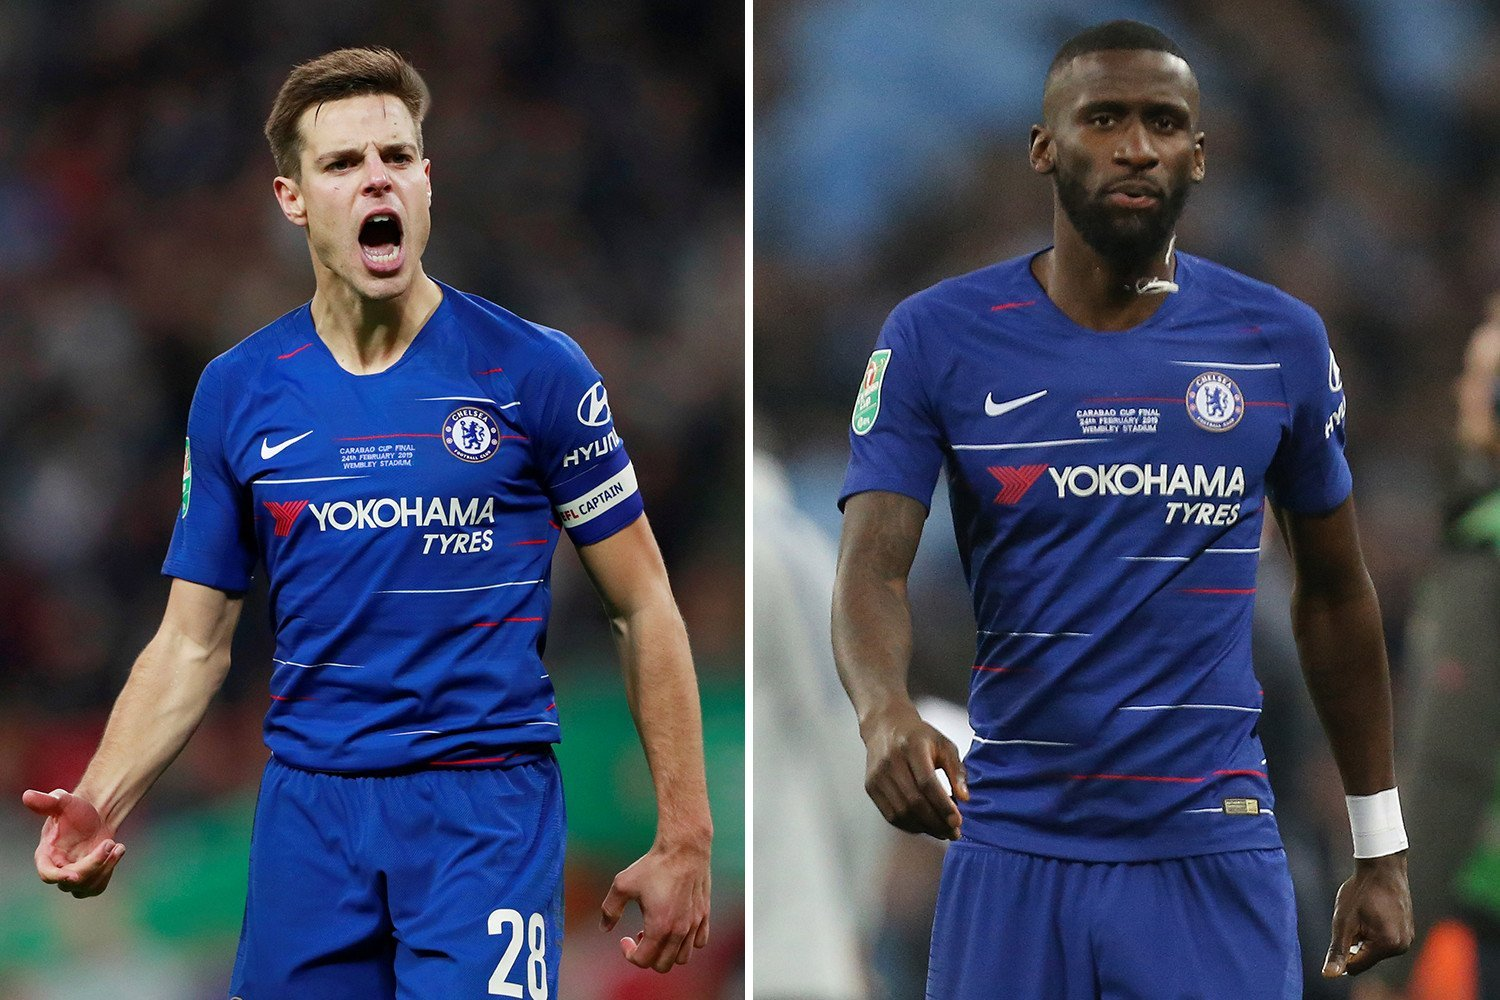 Chelsea fans call for Cesar Azpilicueta to be stripped of captaincy over Kepa row